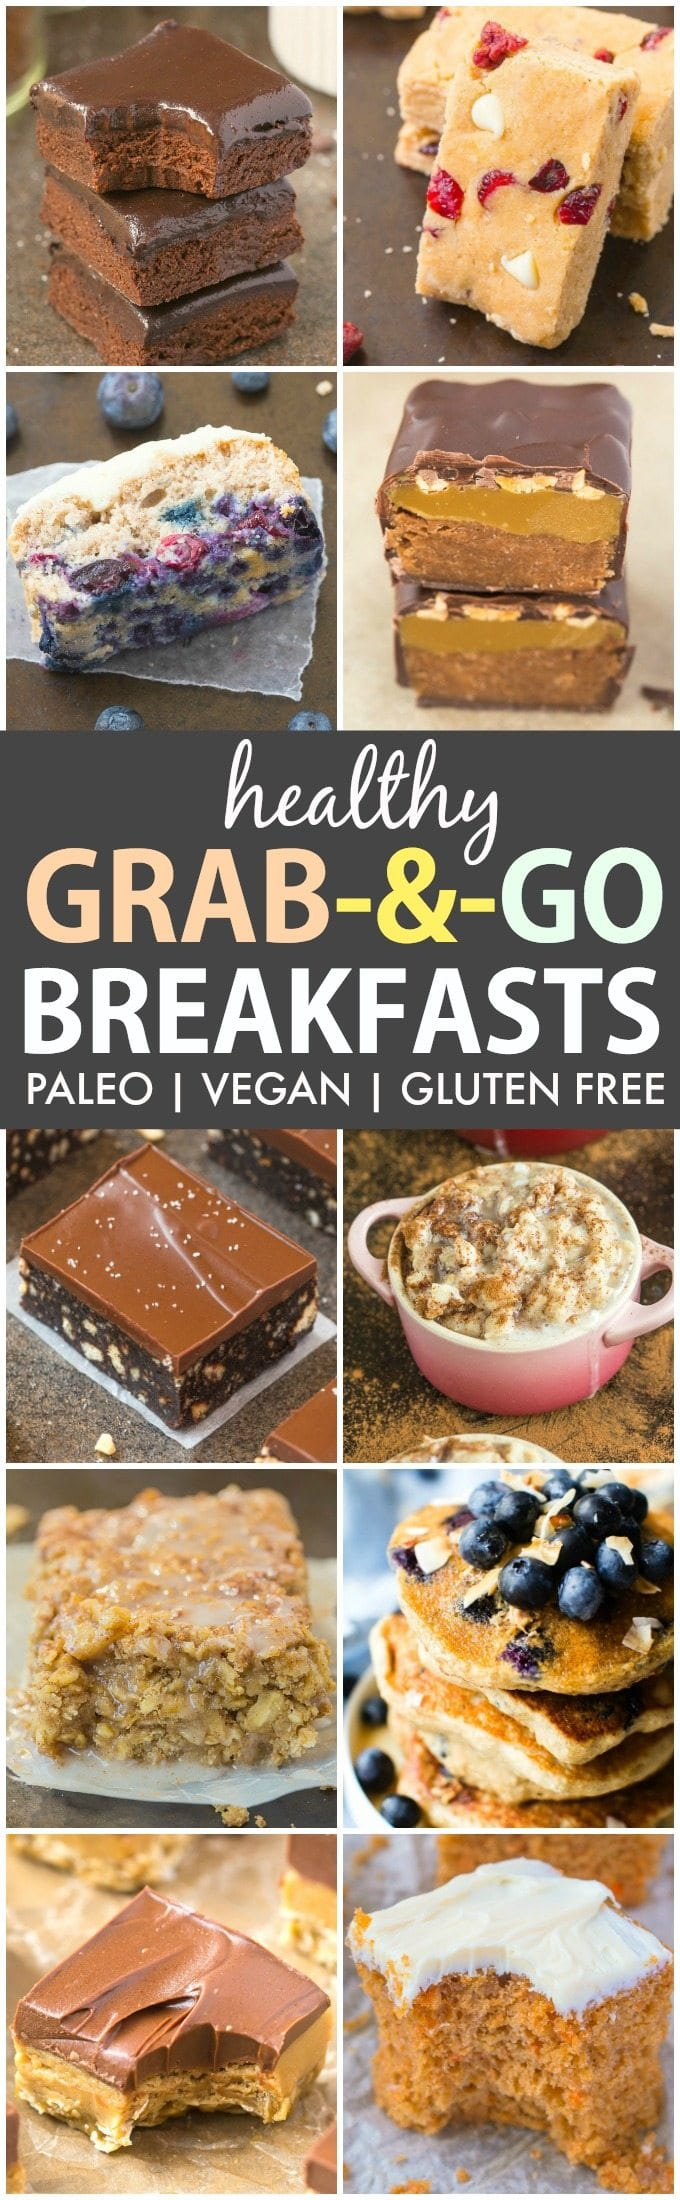 Grab-and-Go Gluten-Free Meals for Your Freezer or Pantry